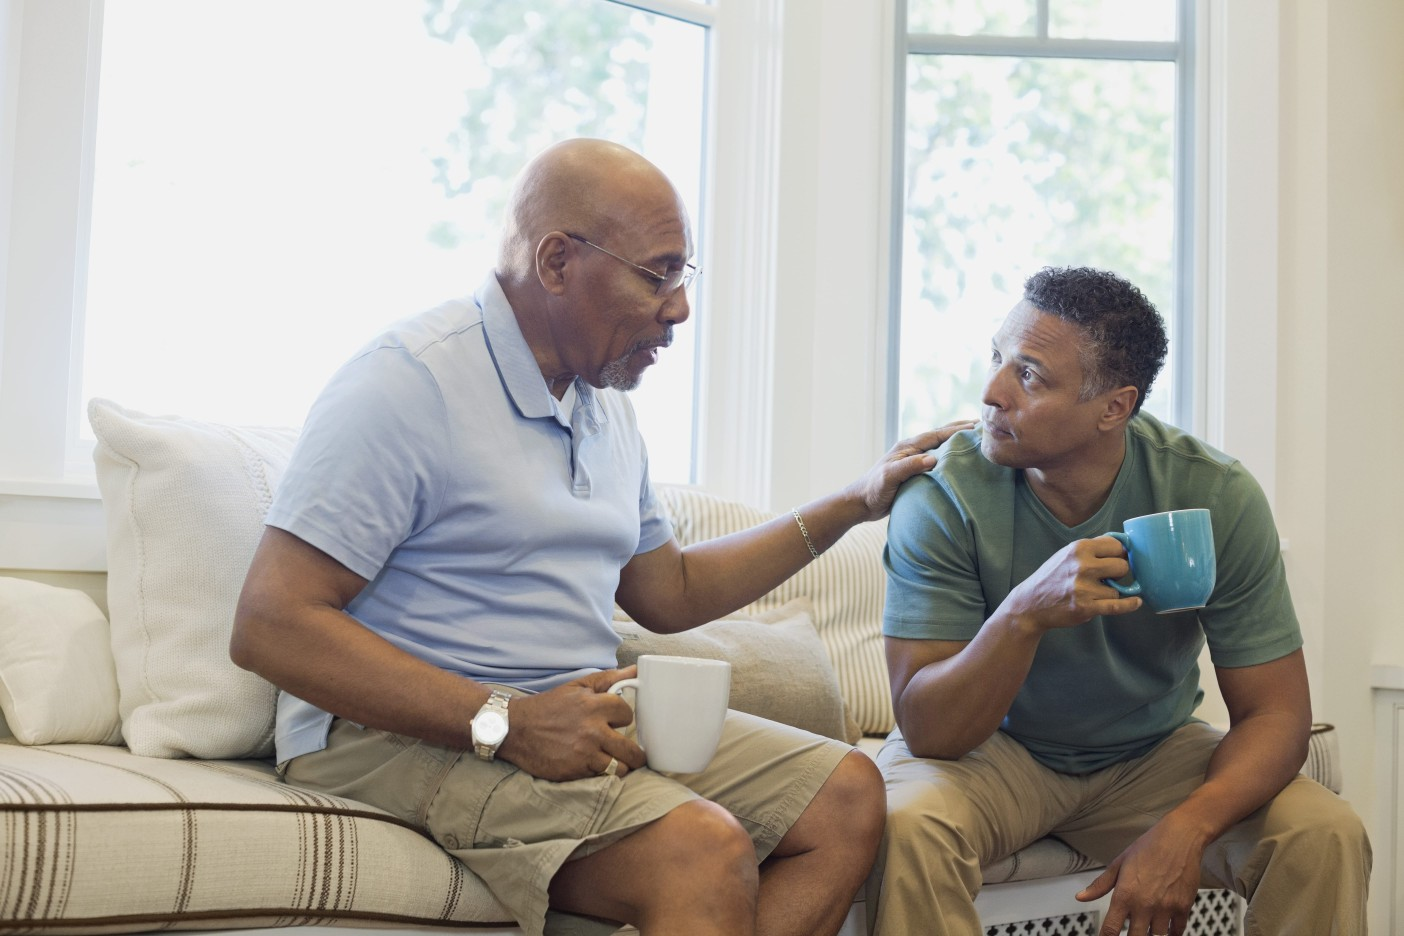 Two men drinking coffee discuss head, neck and skin cancer support groups in a well-lit living room